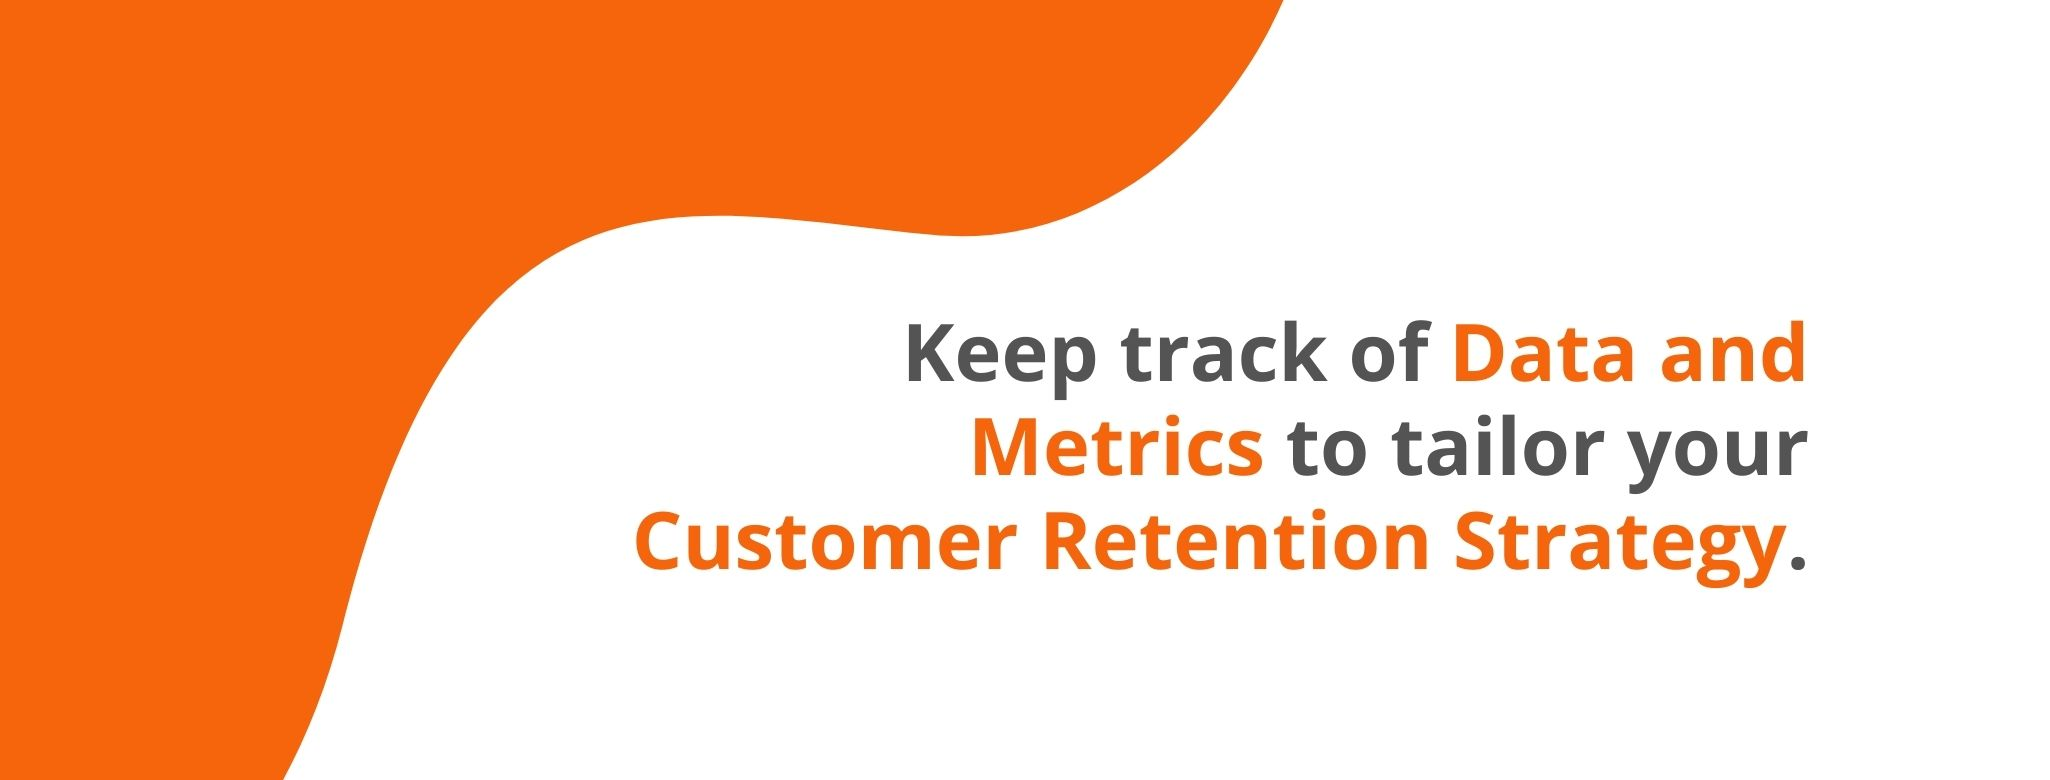 Keep track of data and metrics to tailor your customer retention strategy - 32 Customer Retention Strategies - Replyco